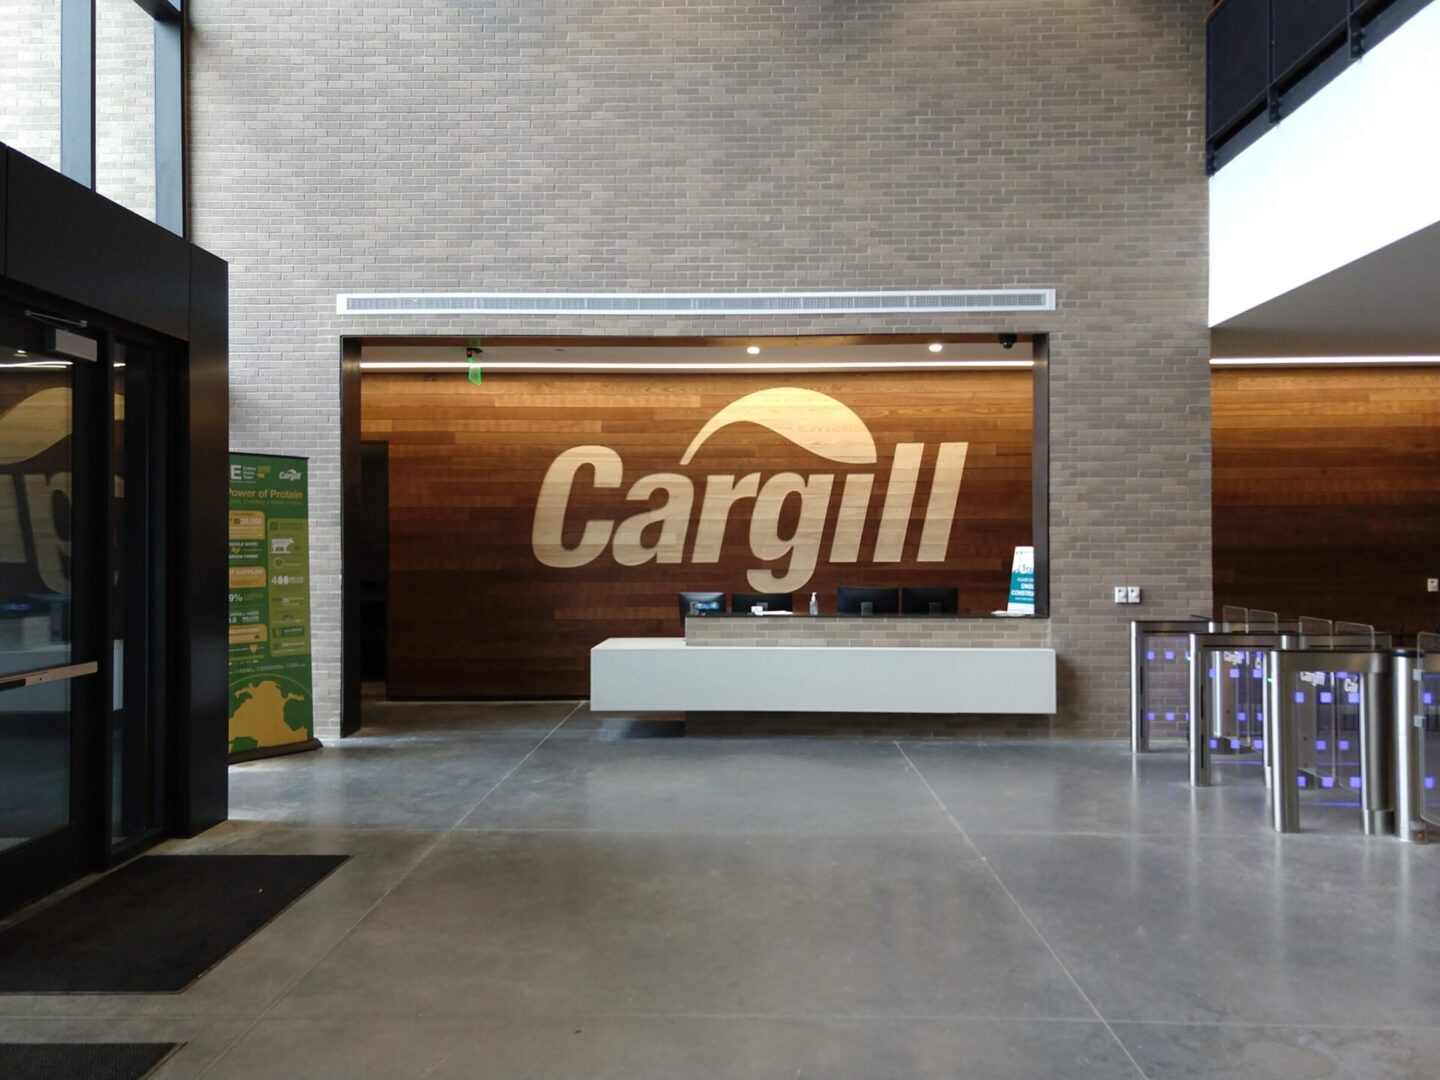 Cargill Routed Cargill Logo Wood Wall